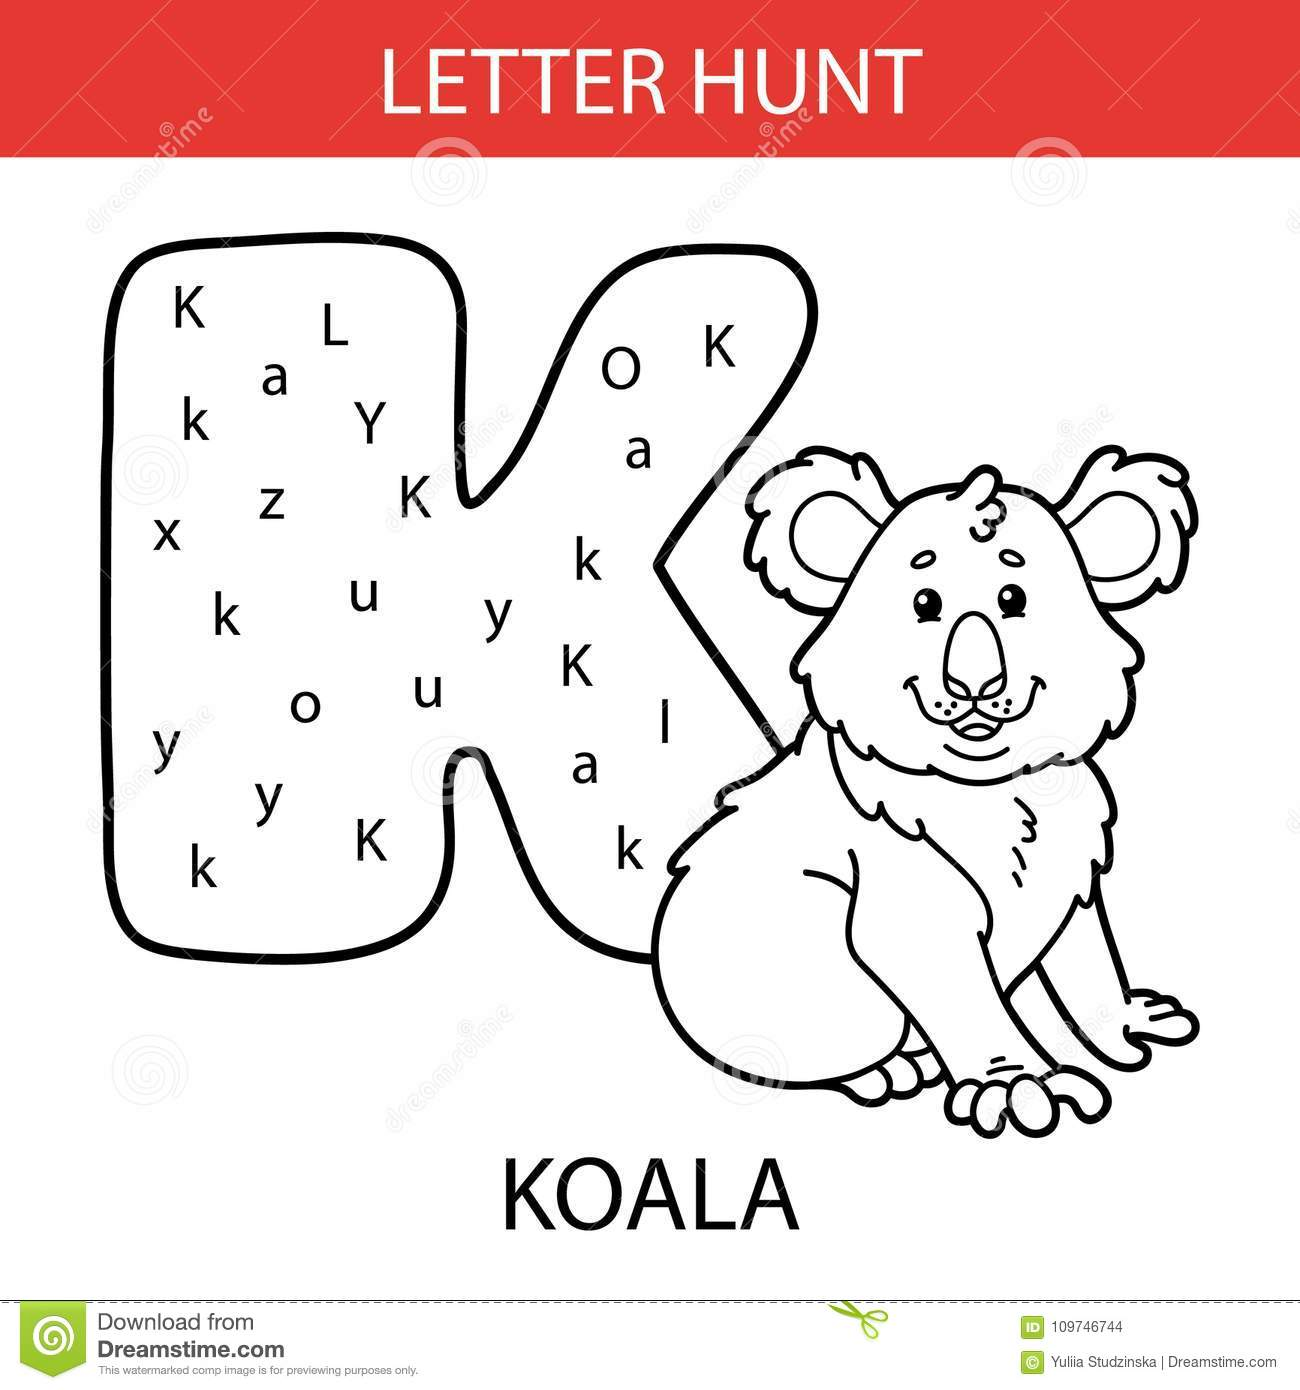 Animal Letter Hunt Koala Stock Vector Illustration Of